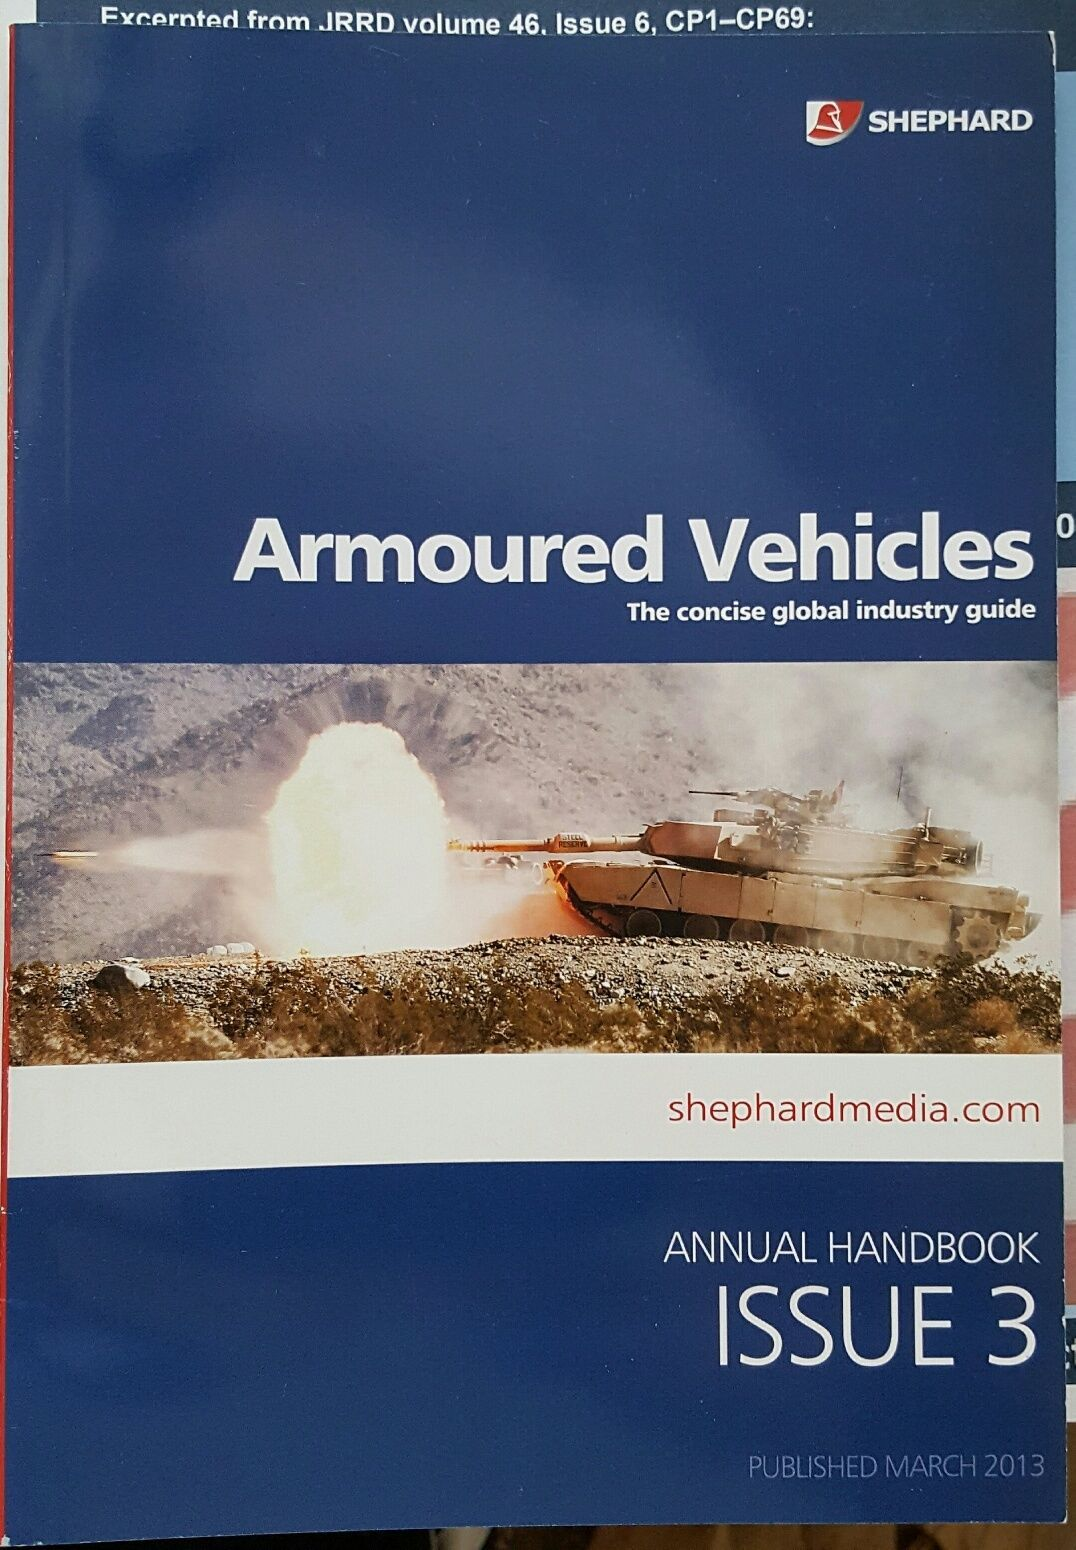 Primary image for Armoured Vehicles Annual Handbook Issue 3 Shephard - The Concise Global Industri